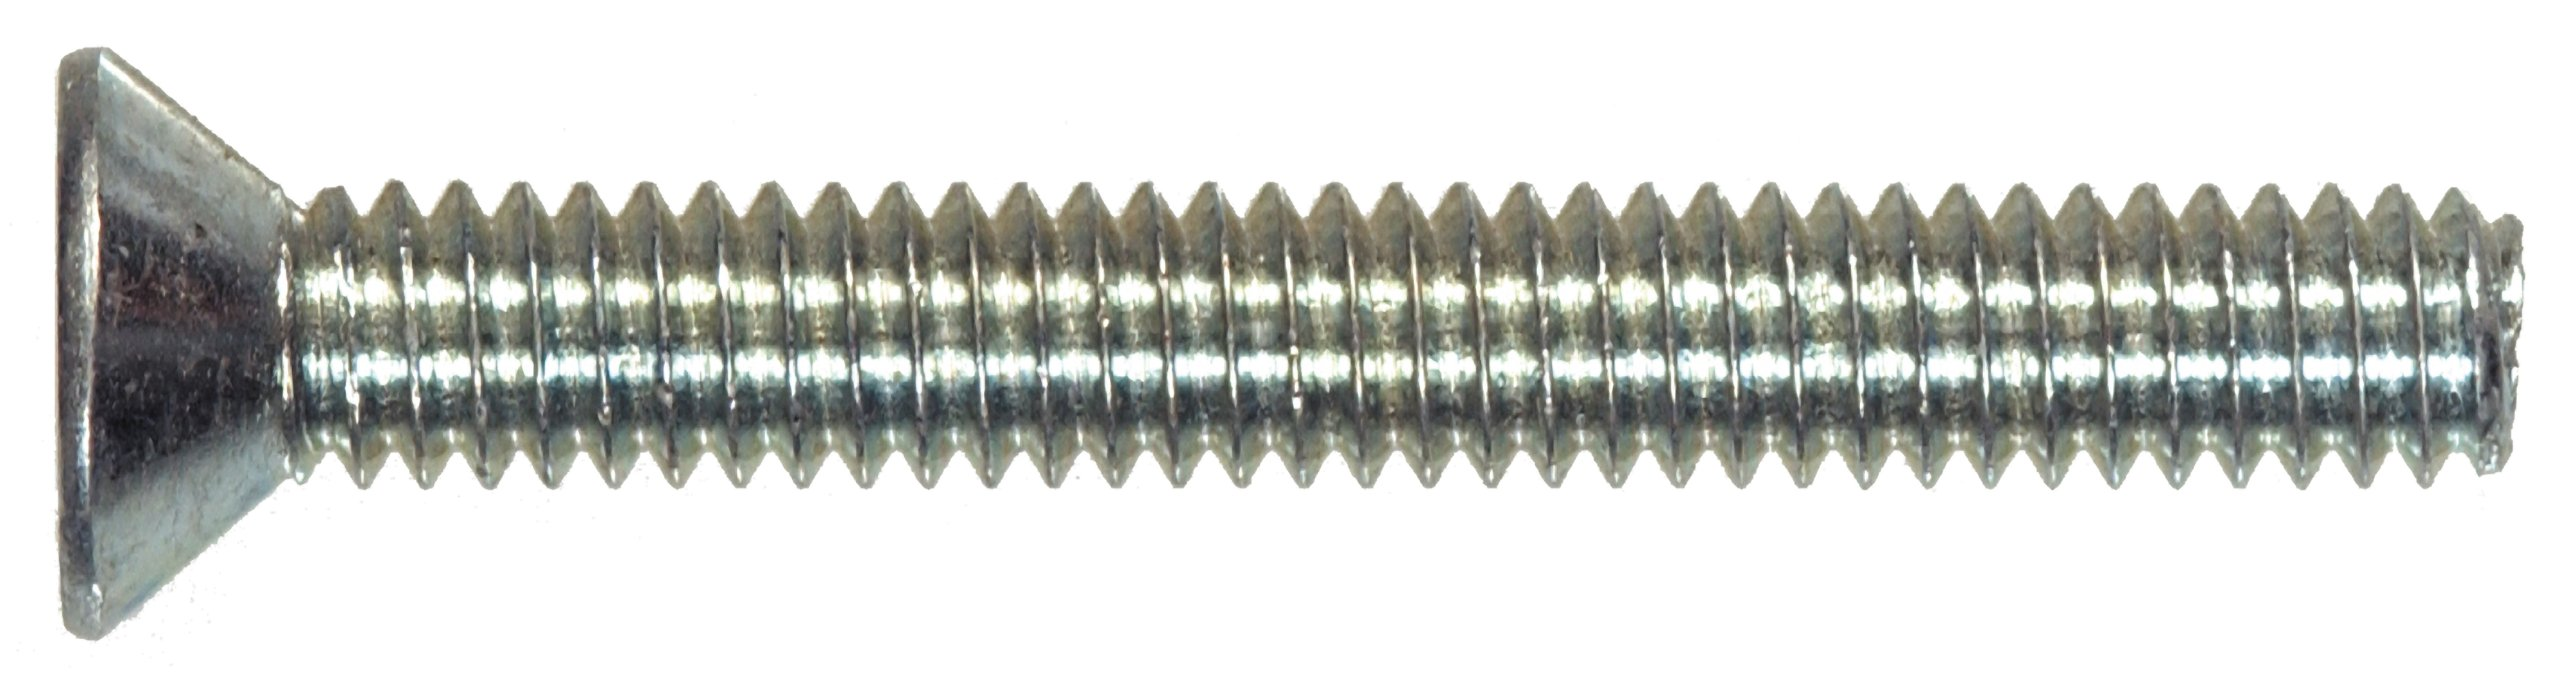 The Hillman Group 101085 10-24-Inch x 2-1/2-Inch Flat Head Phillips Machine Screw, 100-Pack